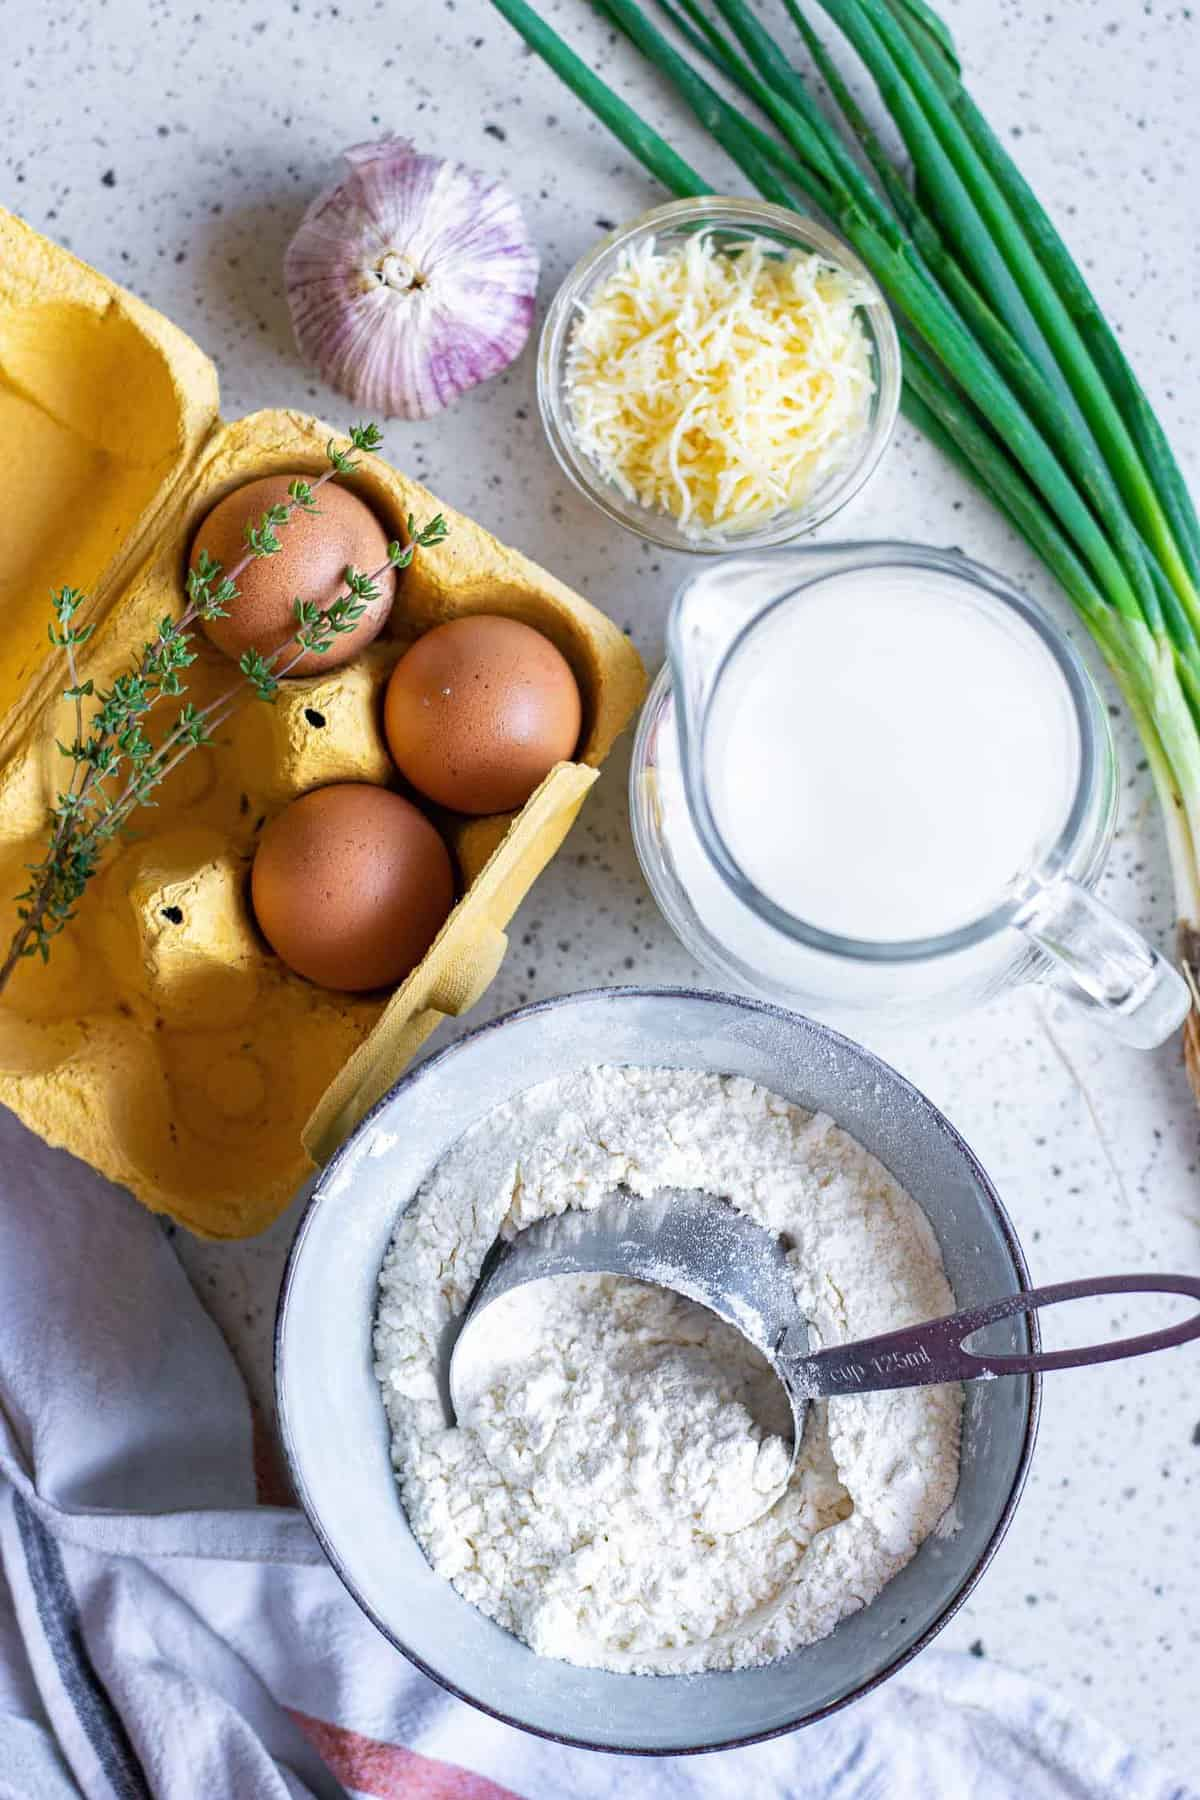 Overhead view of ingredients: flour, eggs, thyme, parmesan, green onions, garlic.